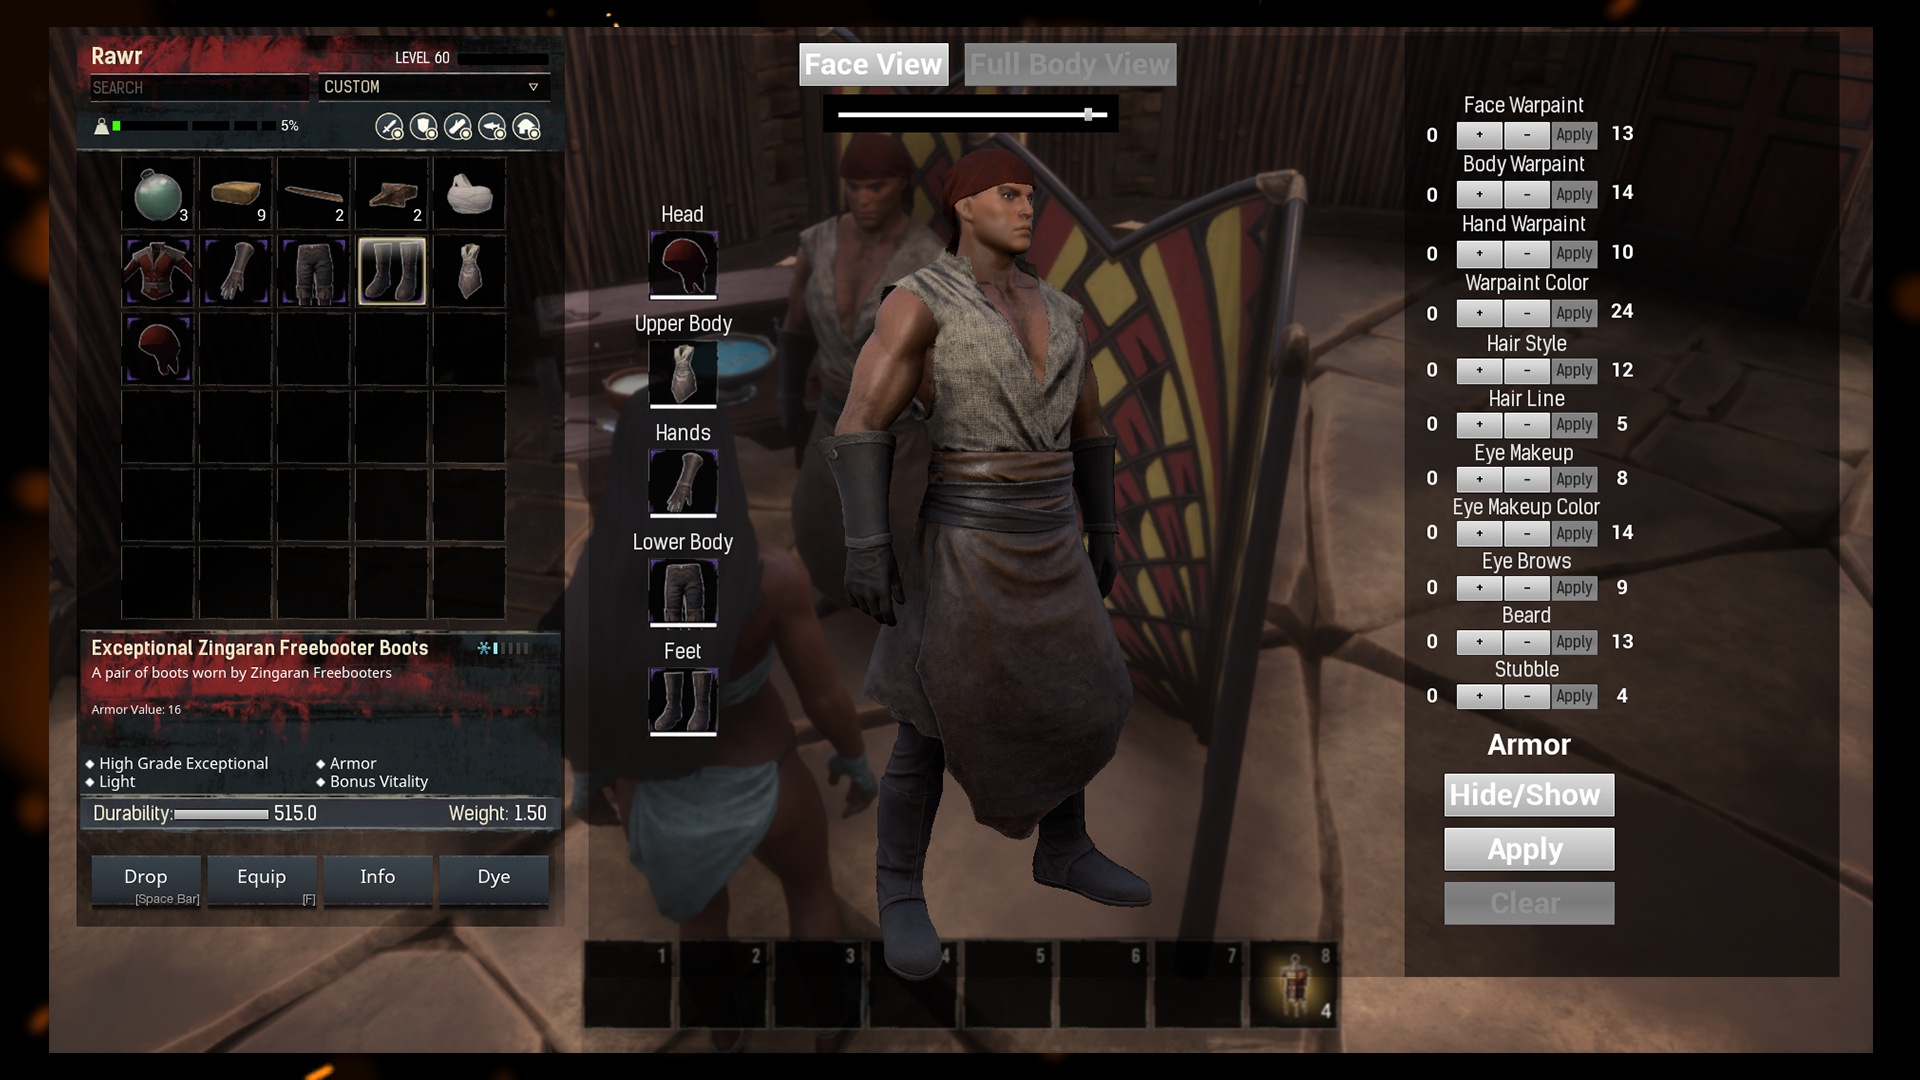 Emberlight, a mod for Roleplayers